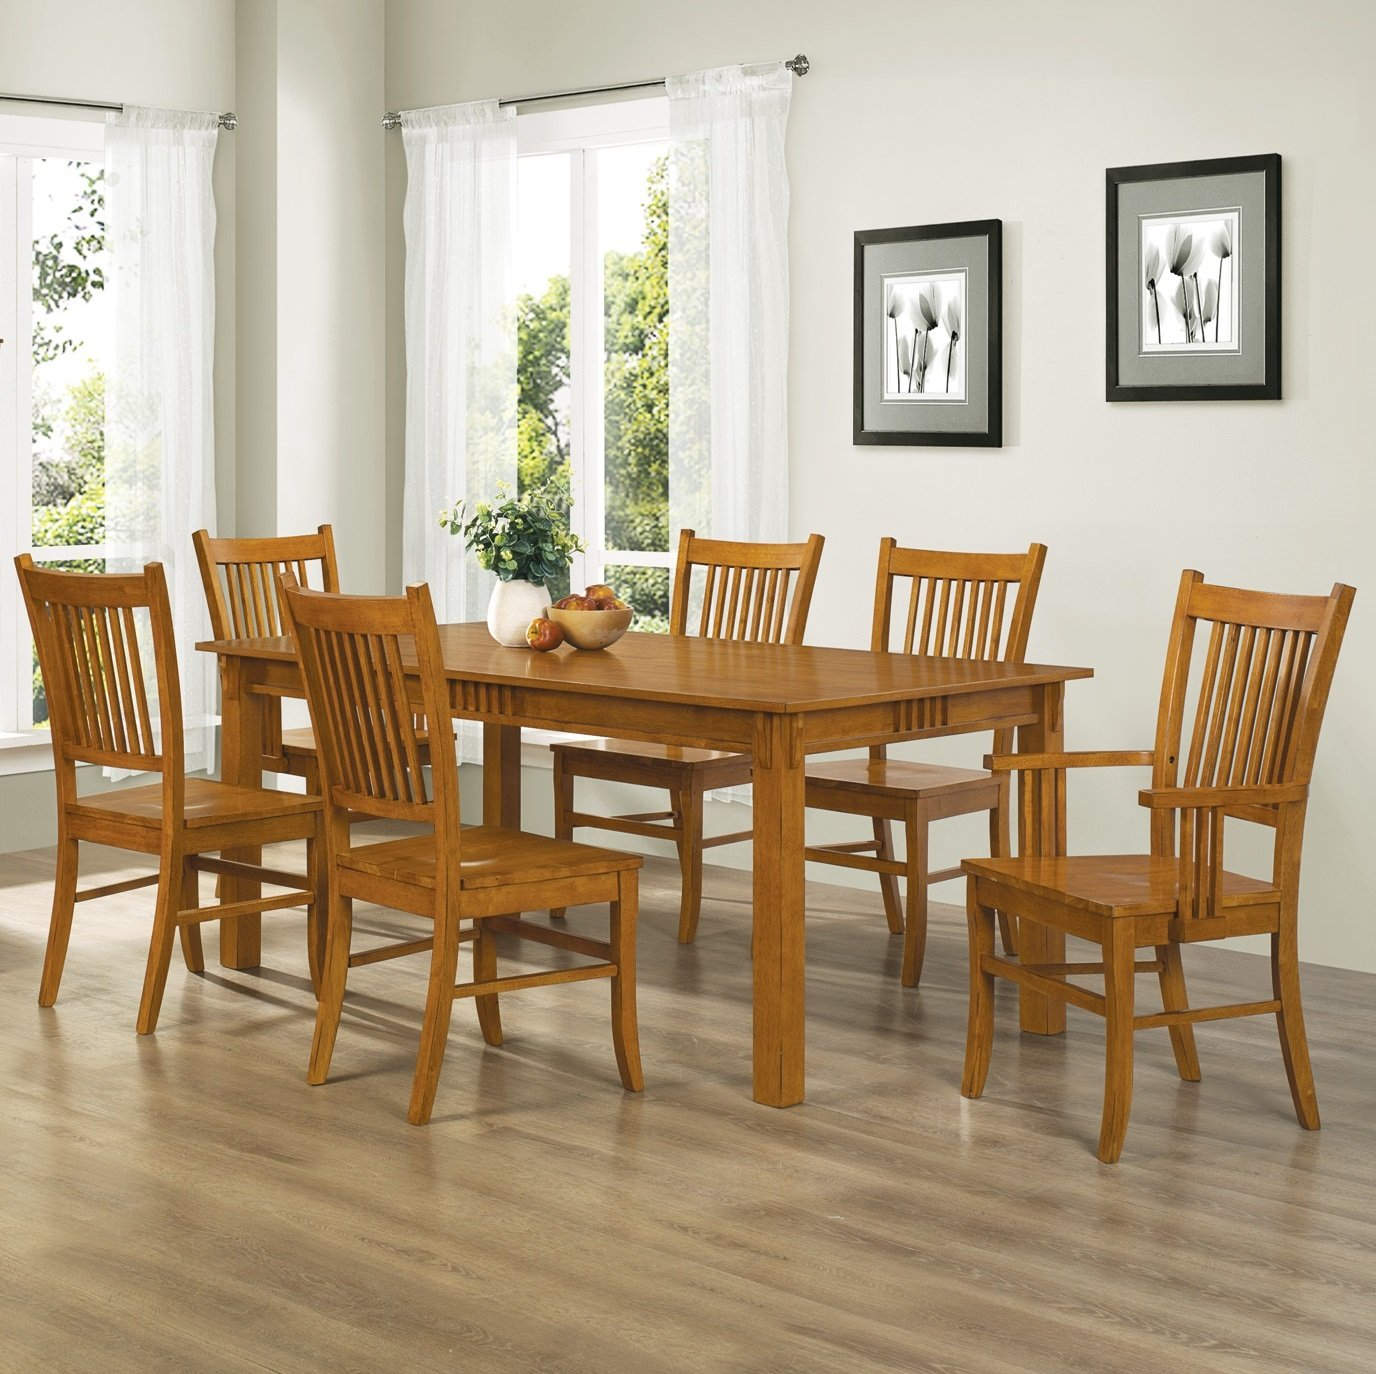 Tables And Chairs Set New in Home Decorating Ideas